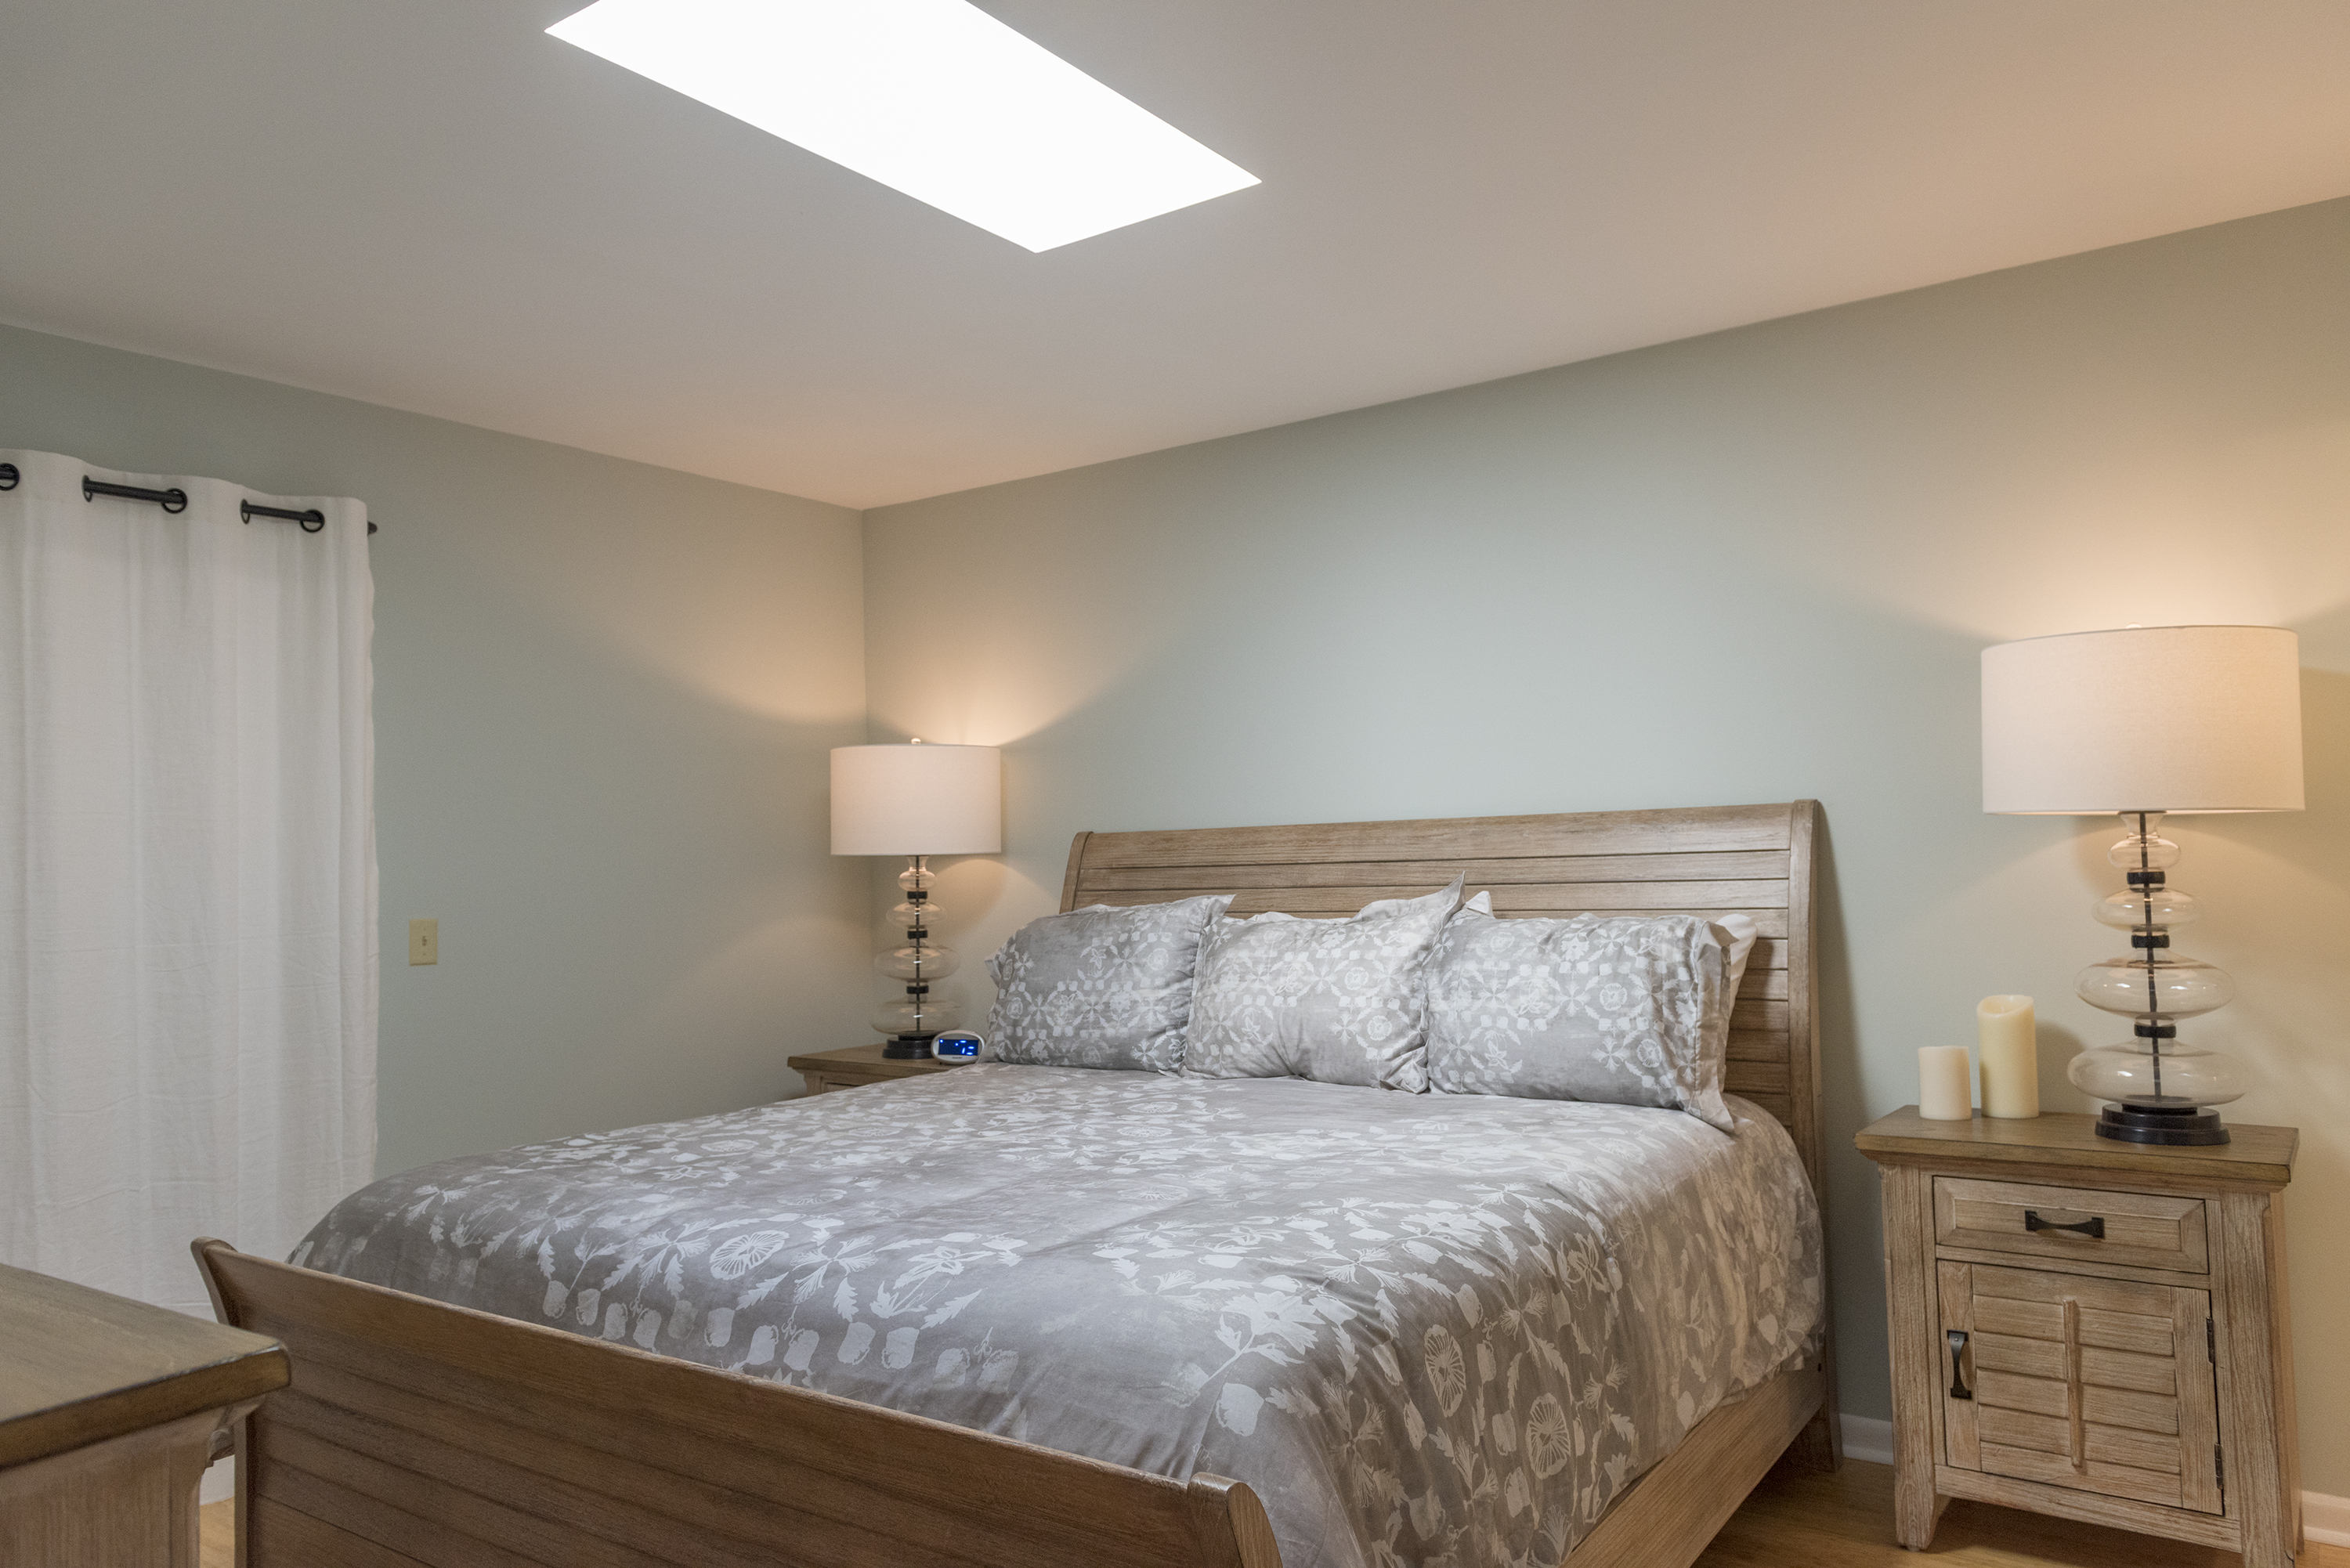 The en suite master bedroom features a king size bed.